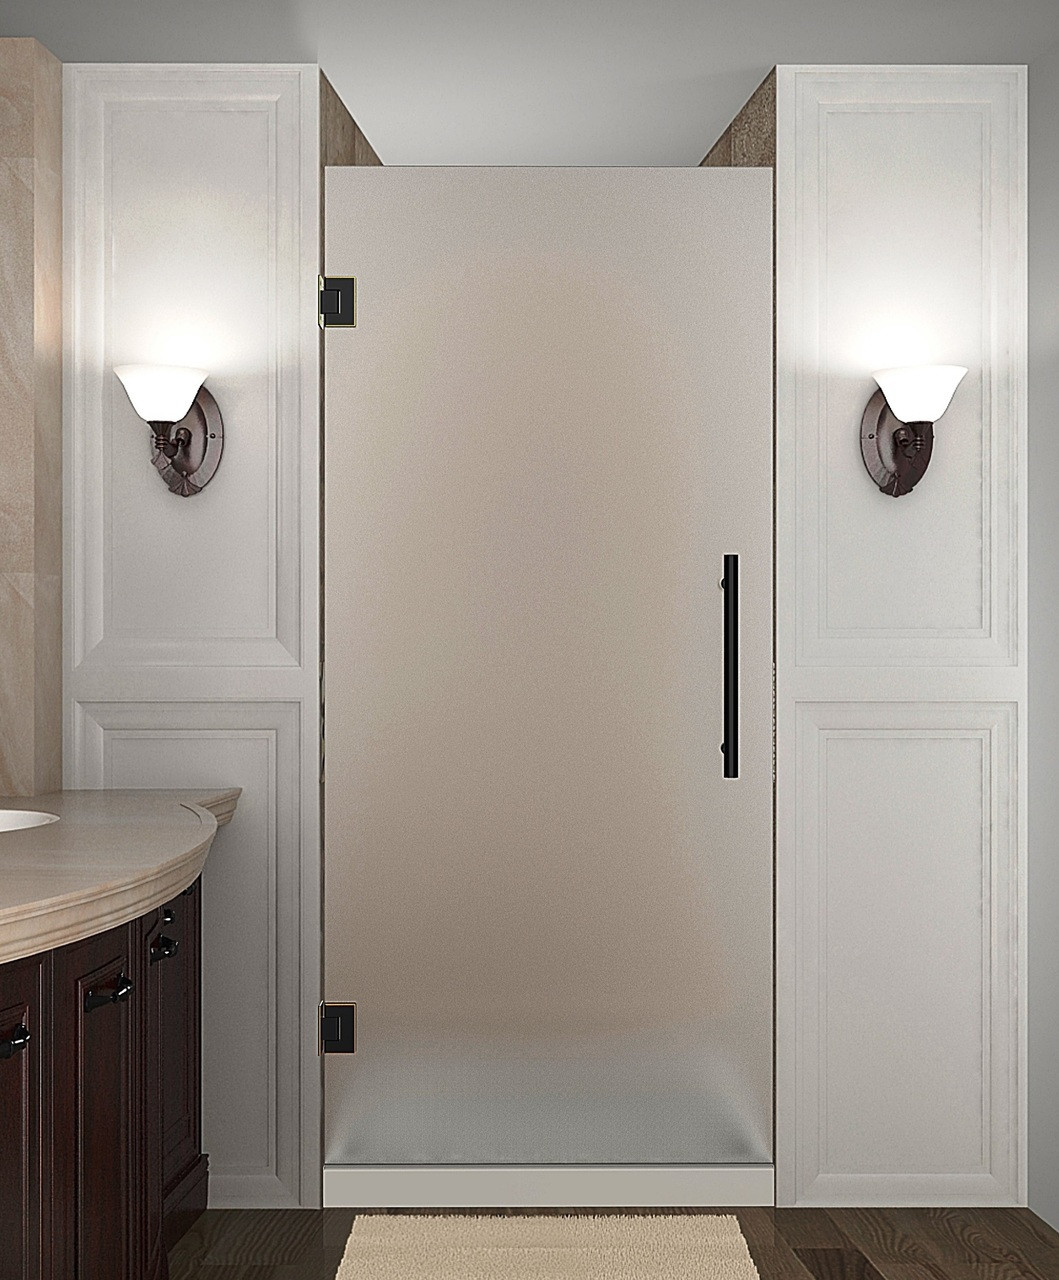 Aston SDR995F-ORB-23-10 Cascadia 23 In x 72 In Completely Frameless Hinged Glass Shower Door In Oil Rubbed Bronze